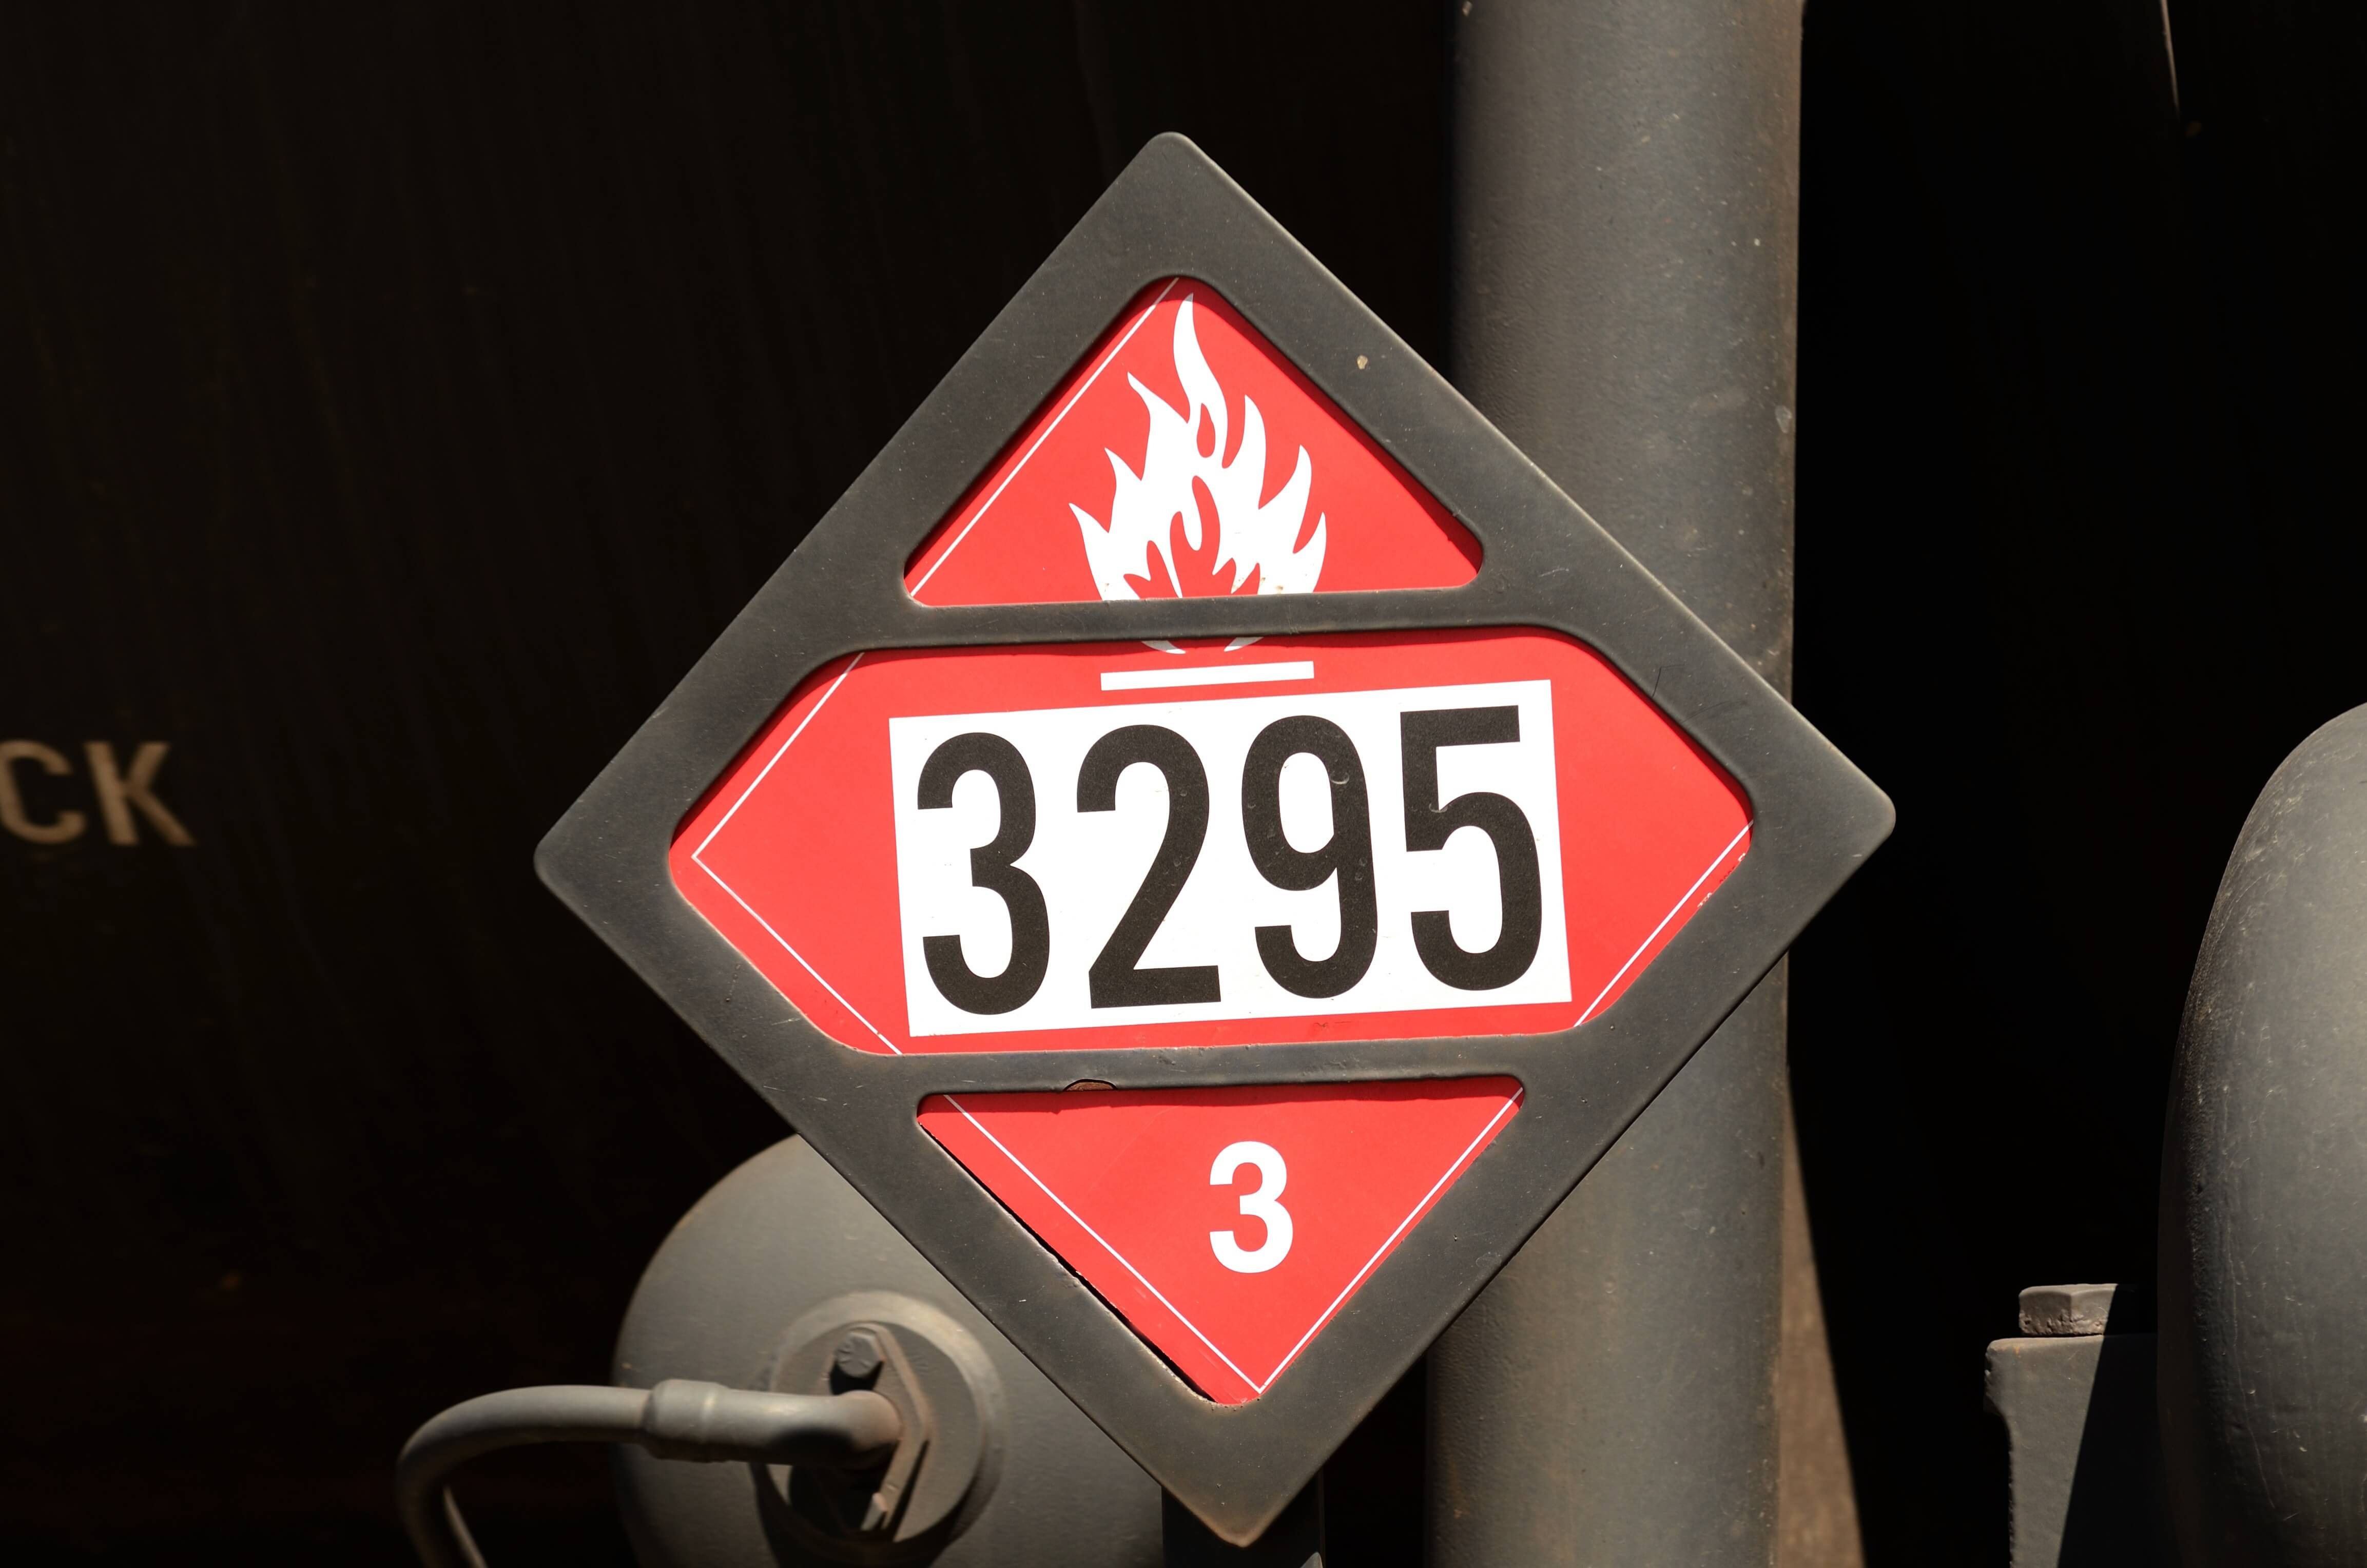 Where should flammable liquids be stored in the workplace